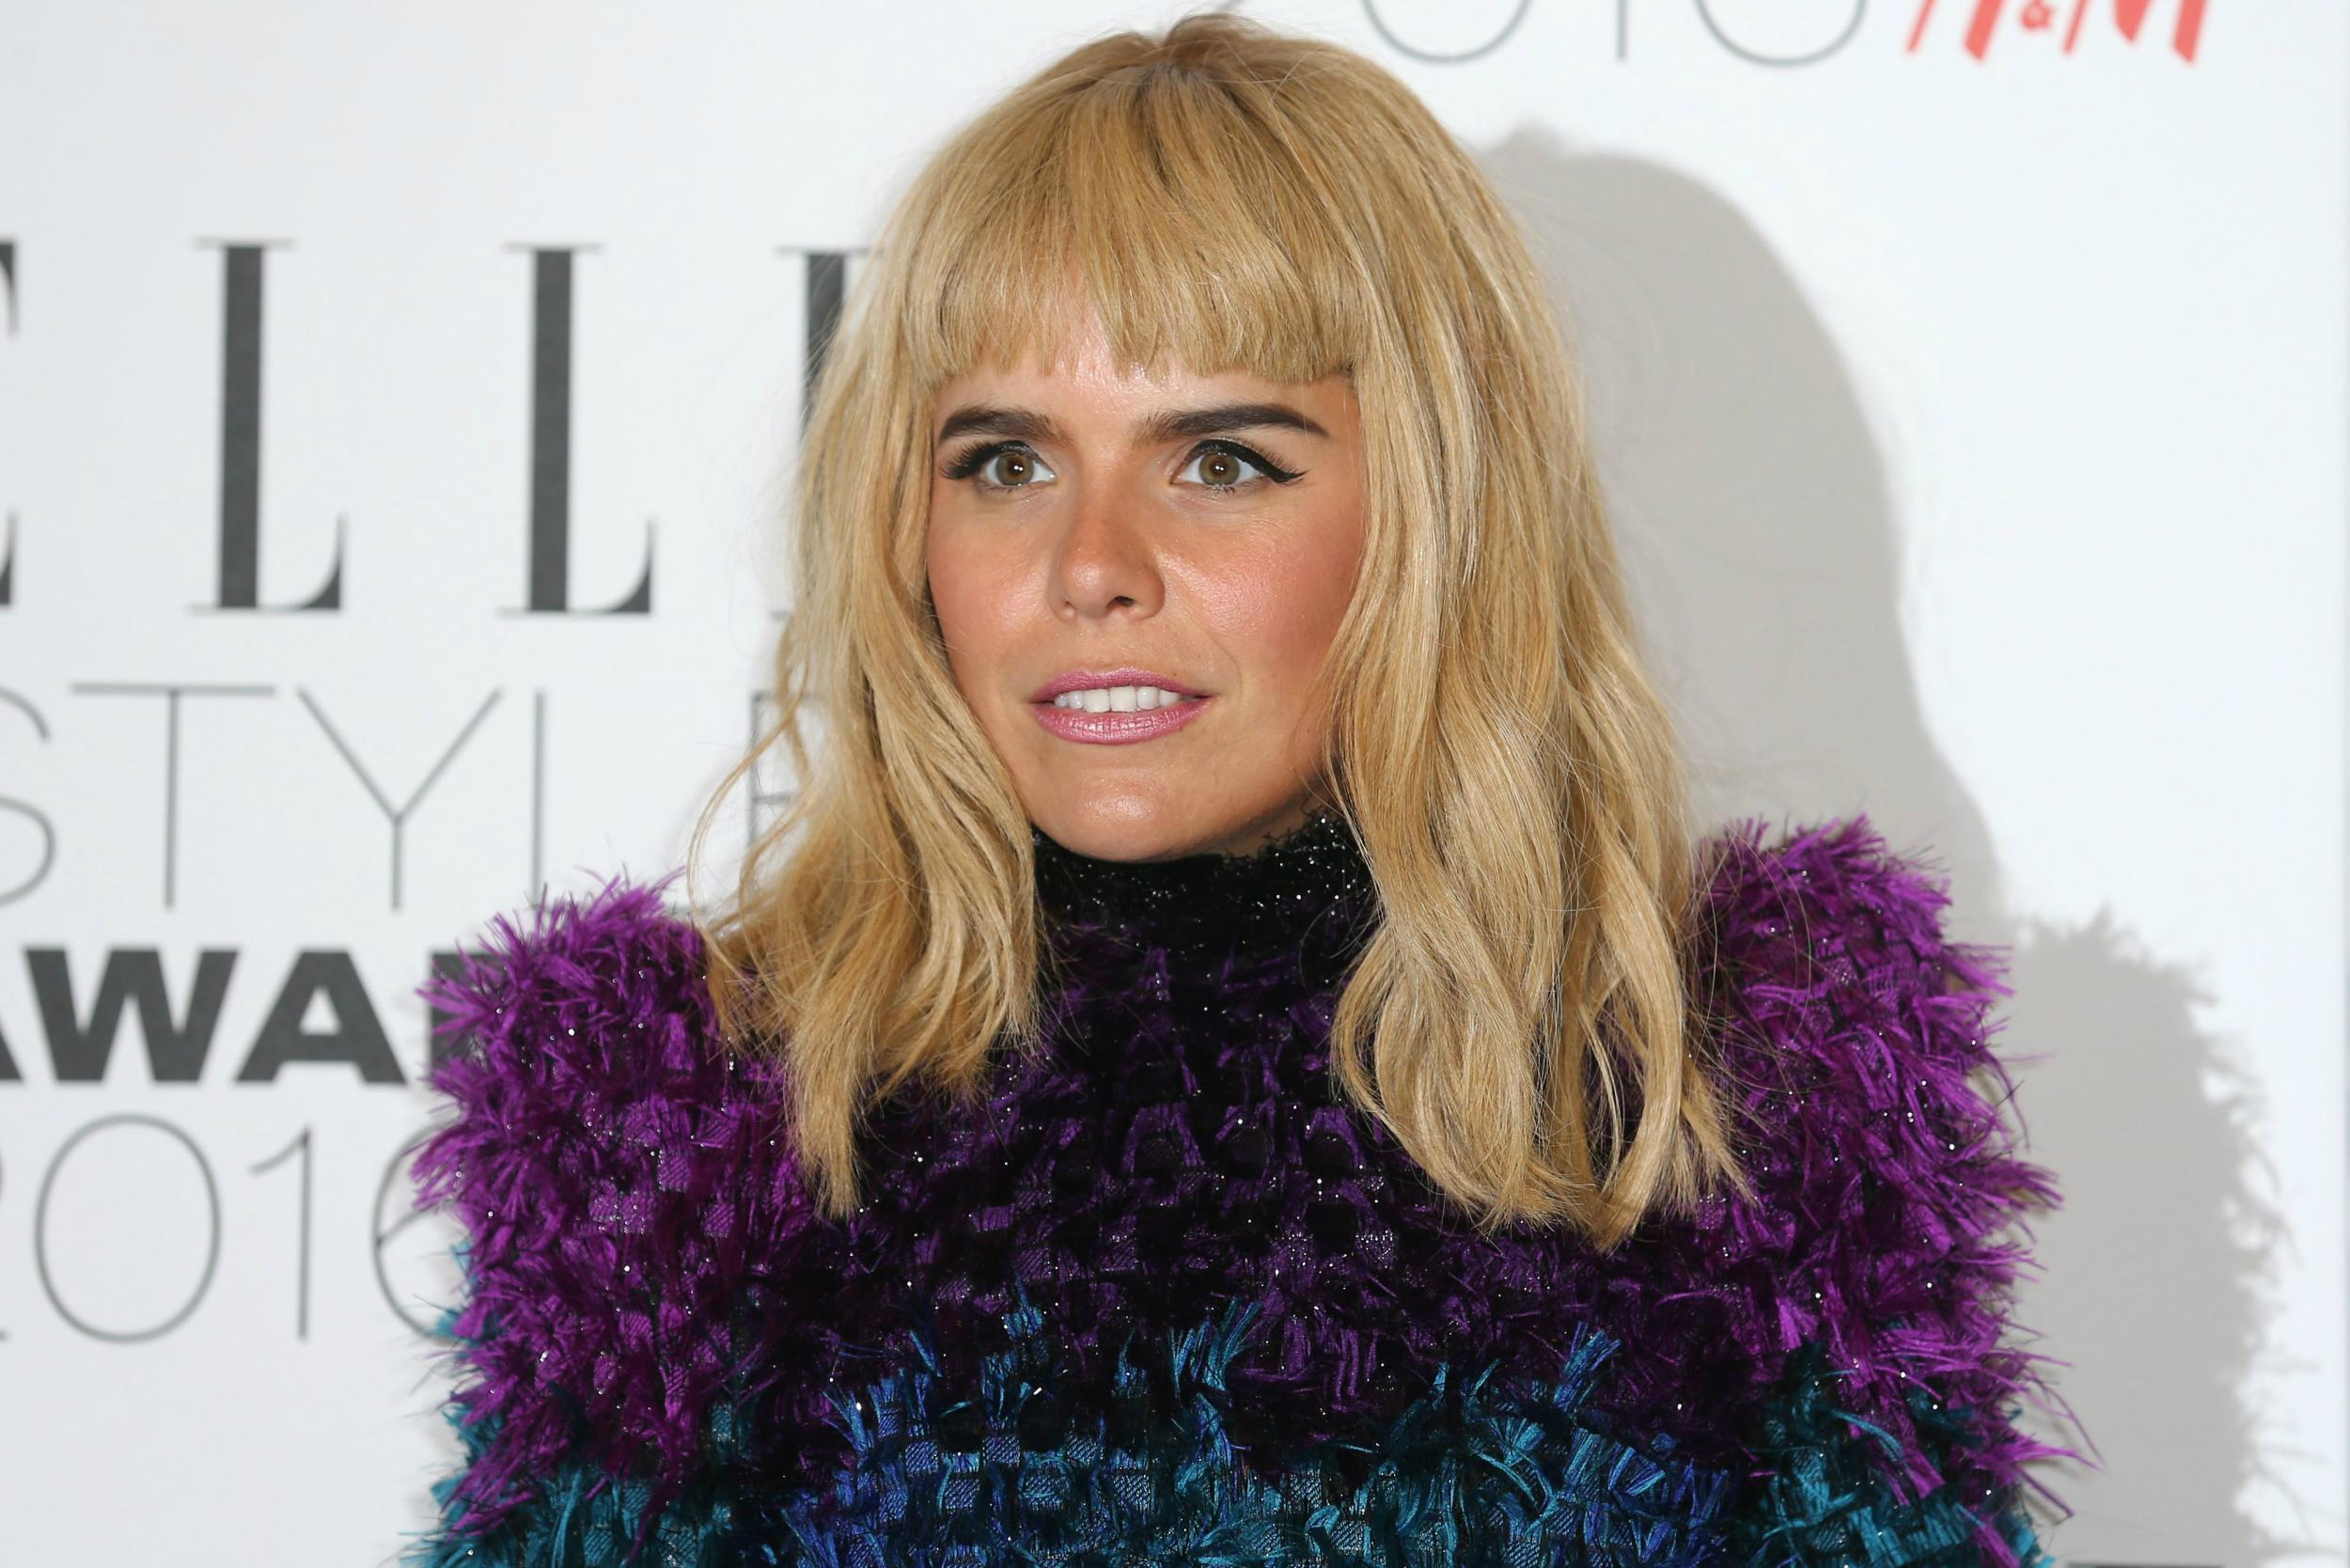 Discussion on this topic: Tanaya Henry, paloma-faith/